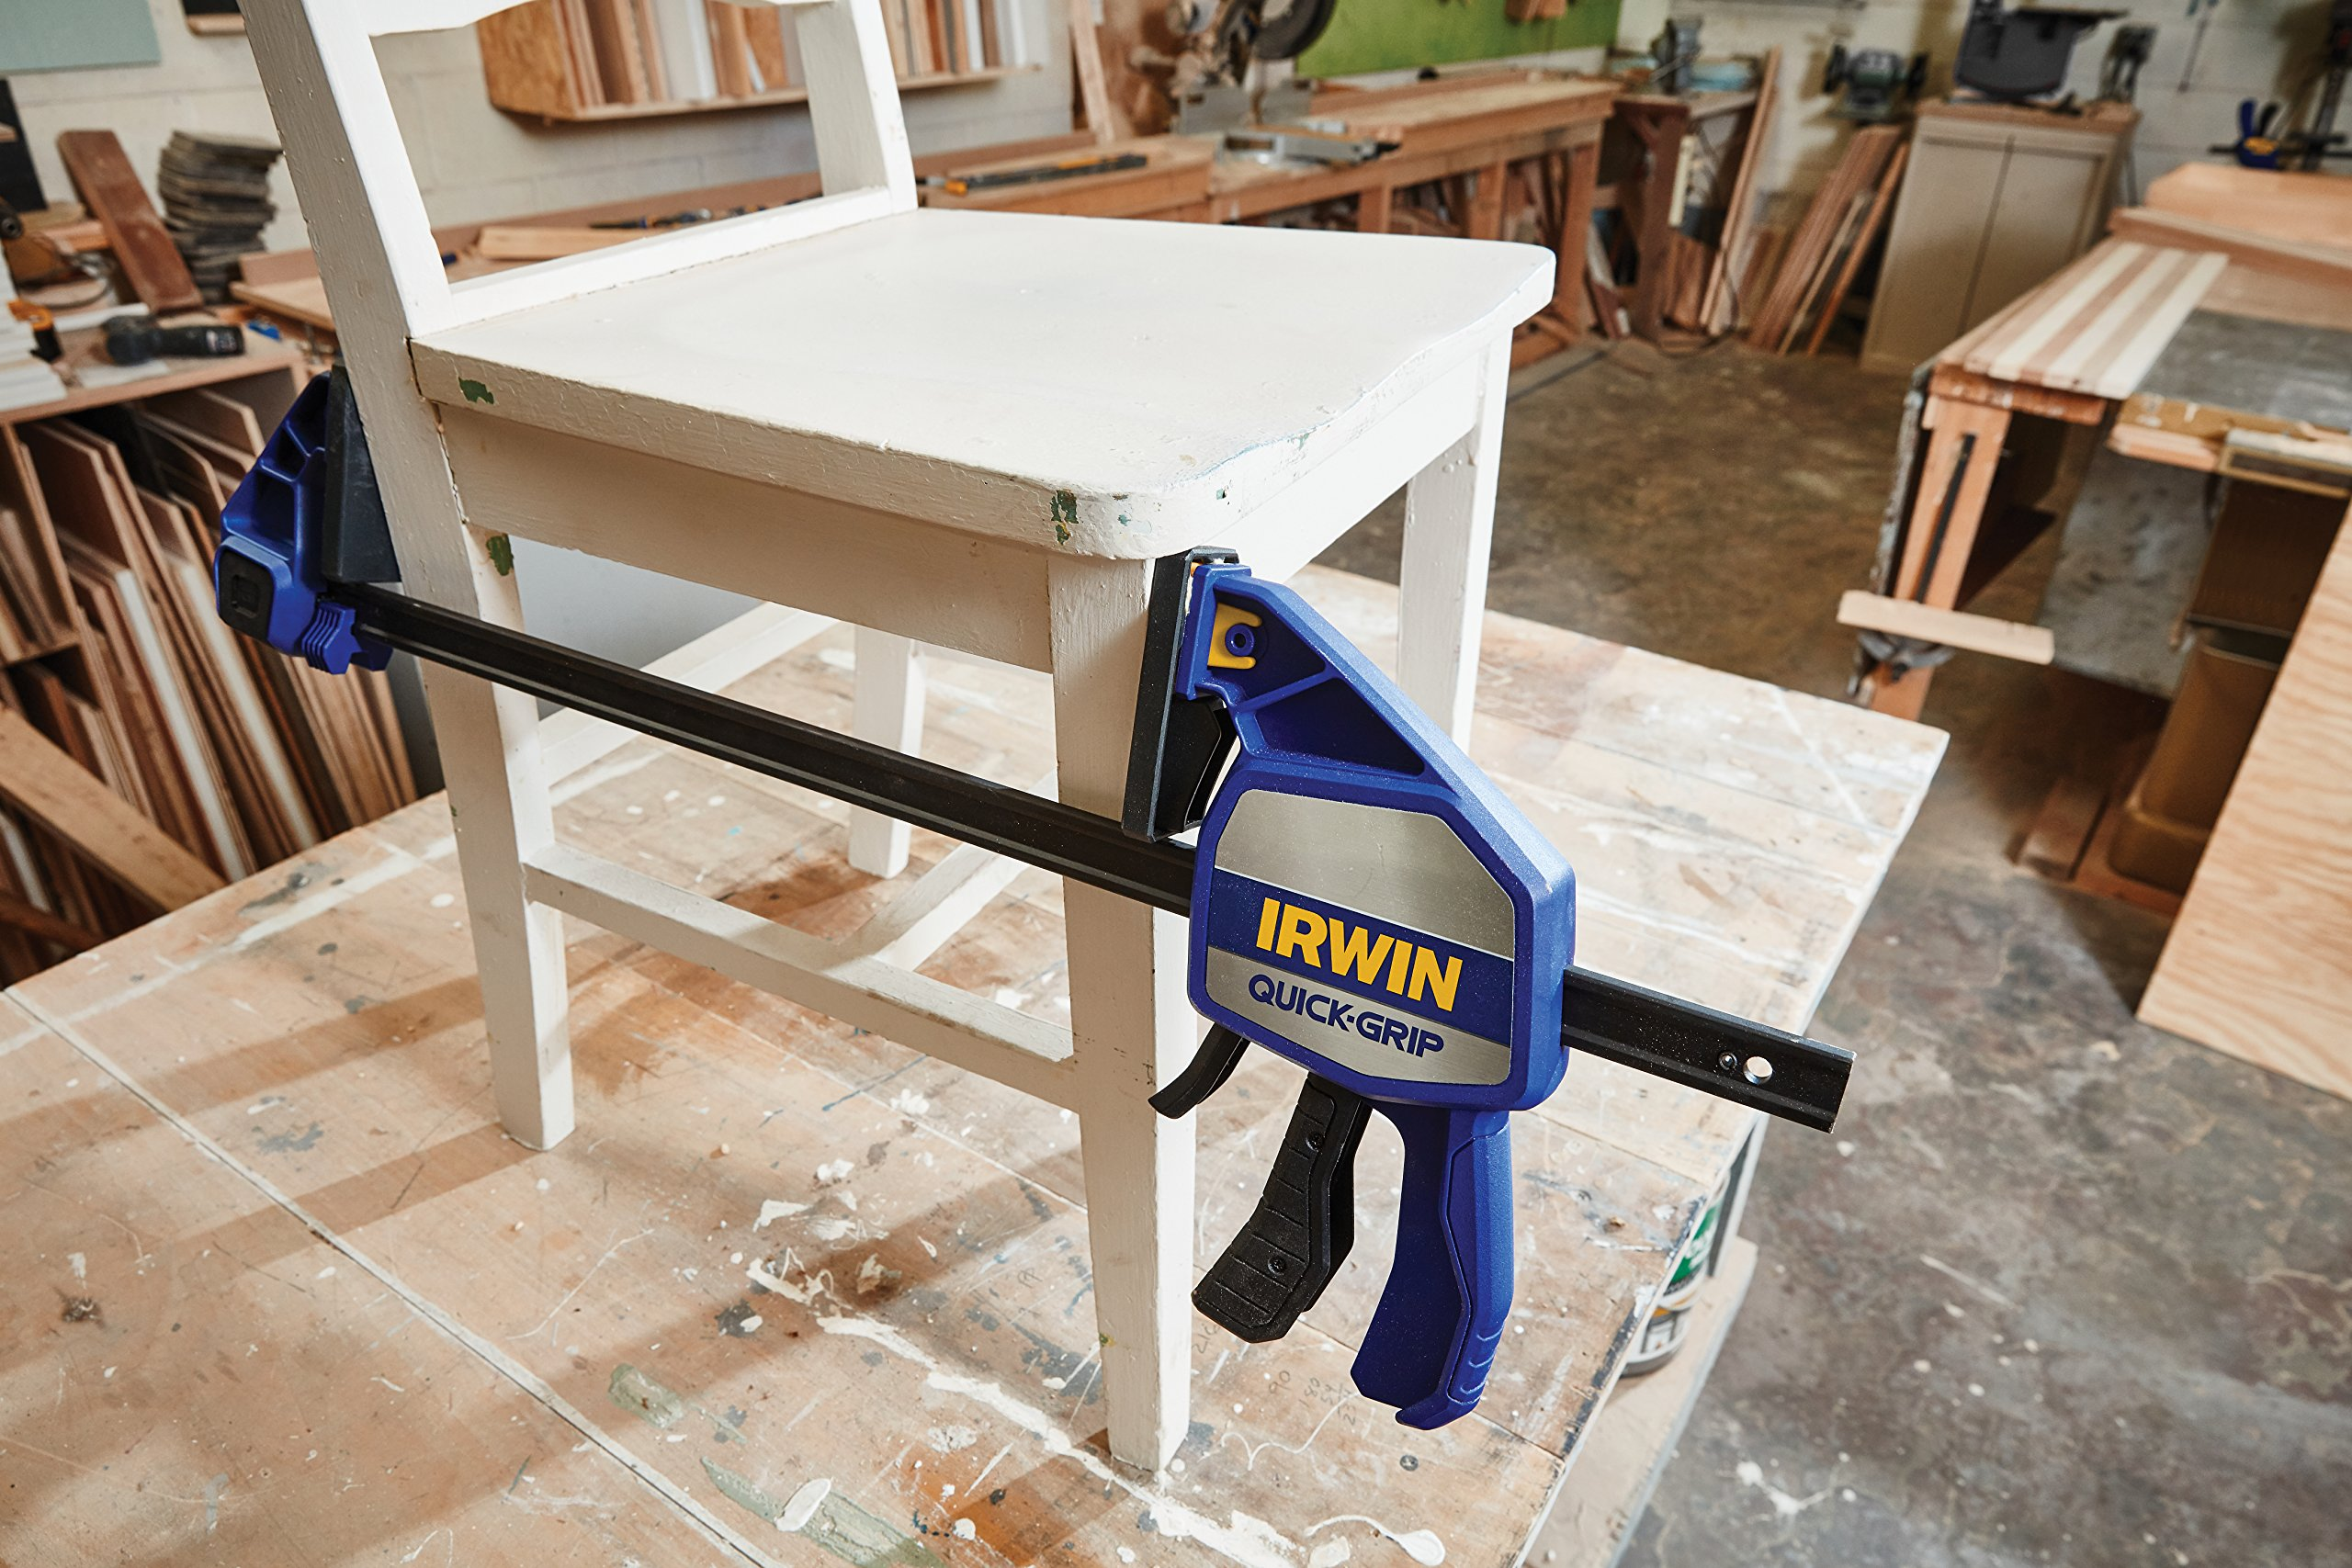 IRWIN QUICK-GRIP One-Handed Bar Clamp, Heavy-Duty, 24'', 1964714 by Irwin Tools (Image #5)